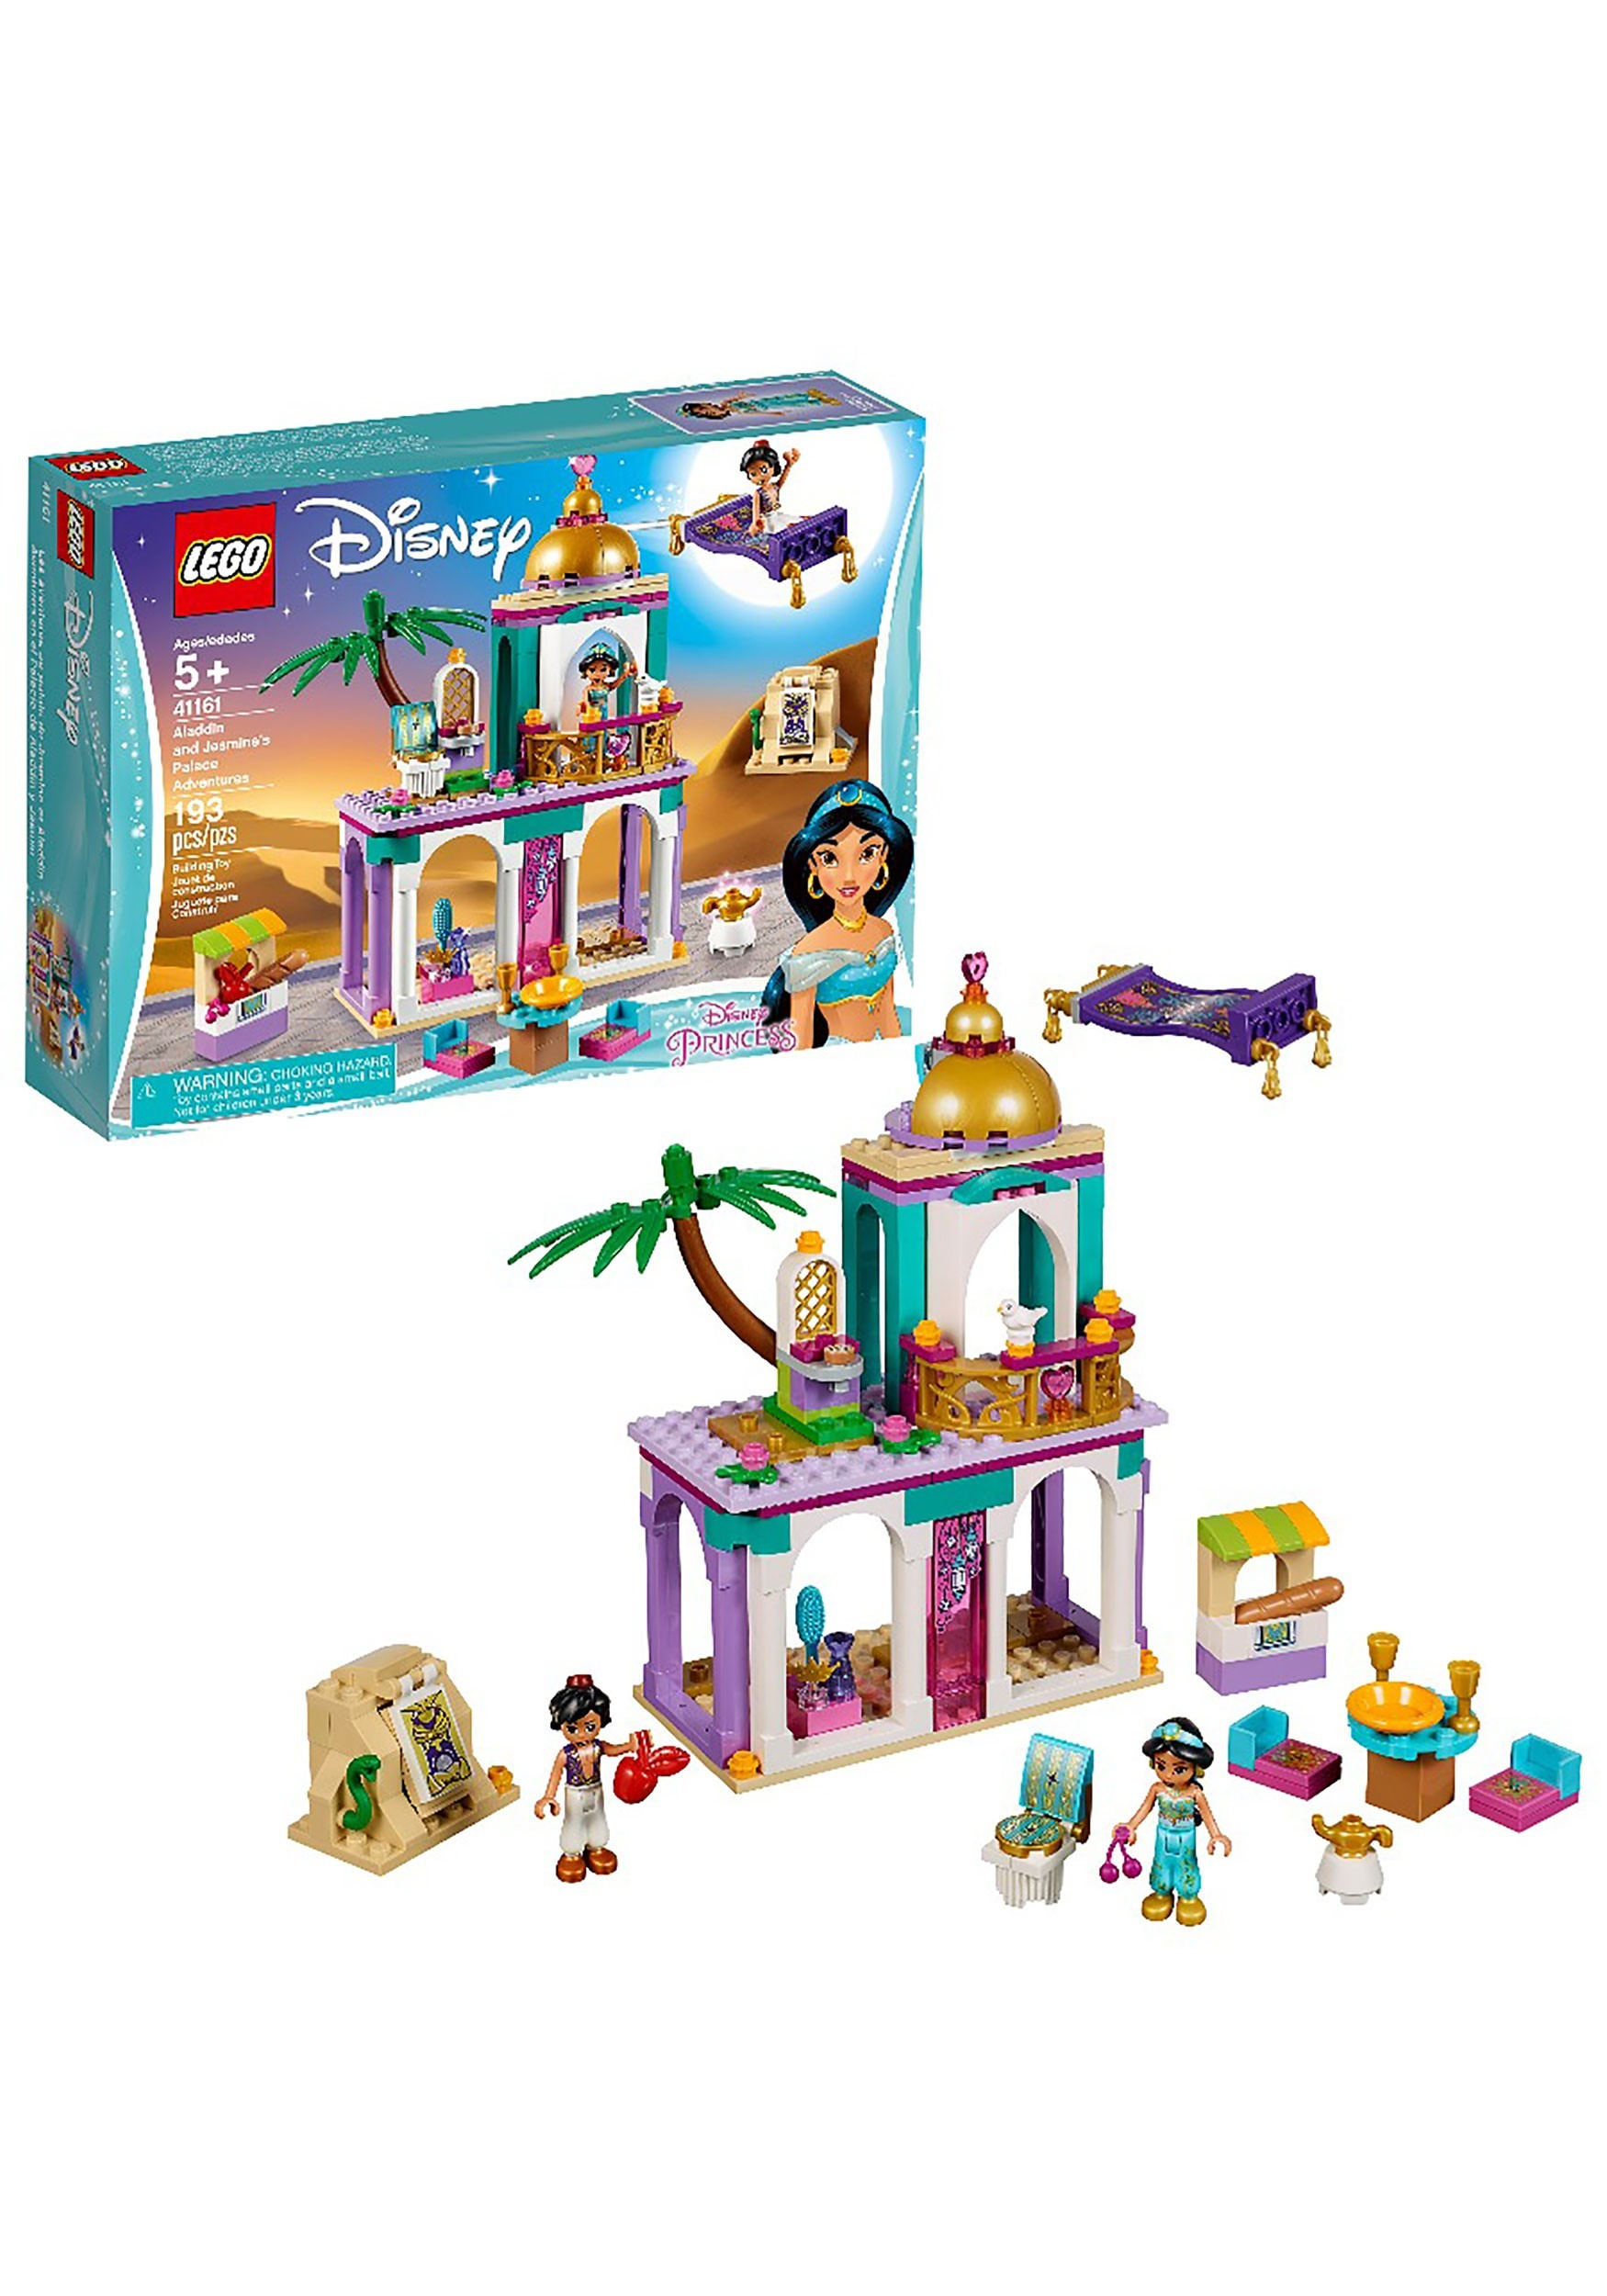 Lego Disney Princess Aladdin Jasmine S Palace Set